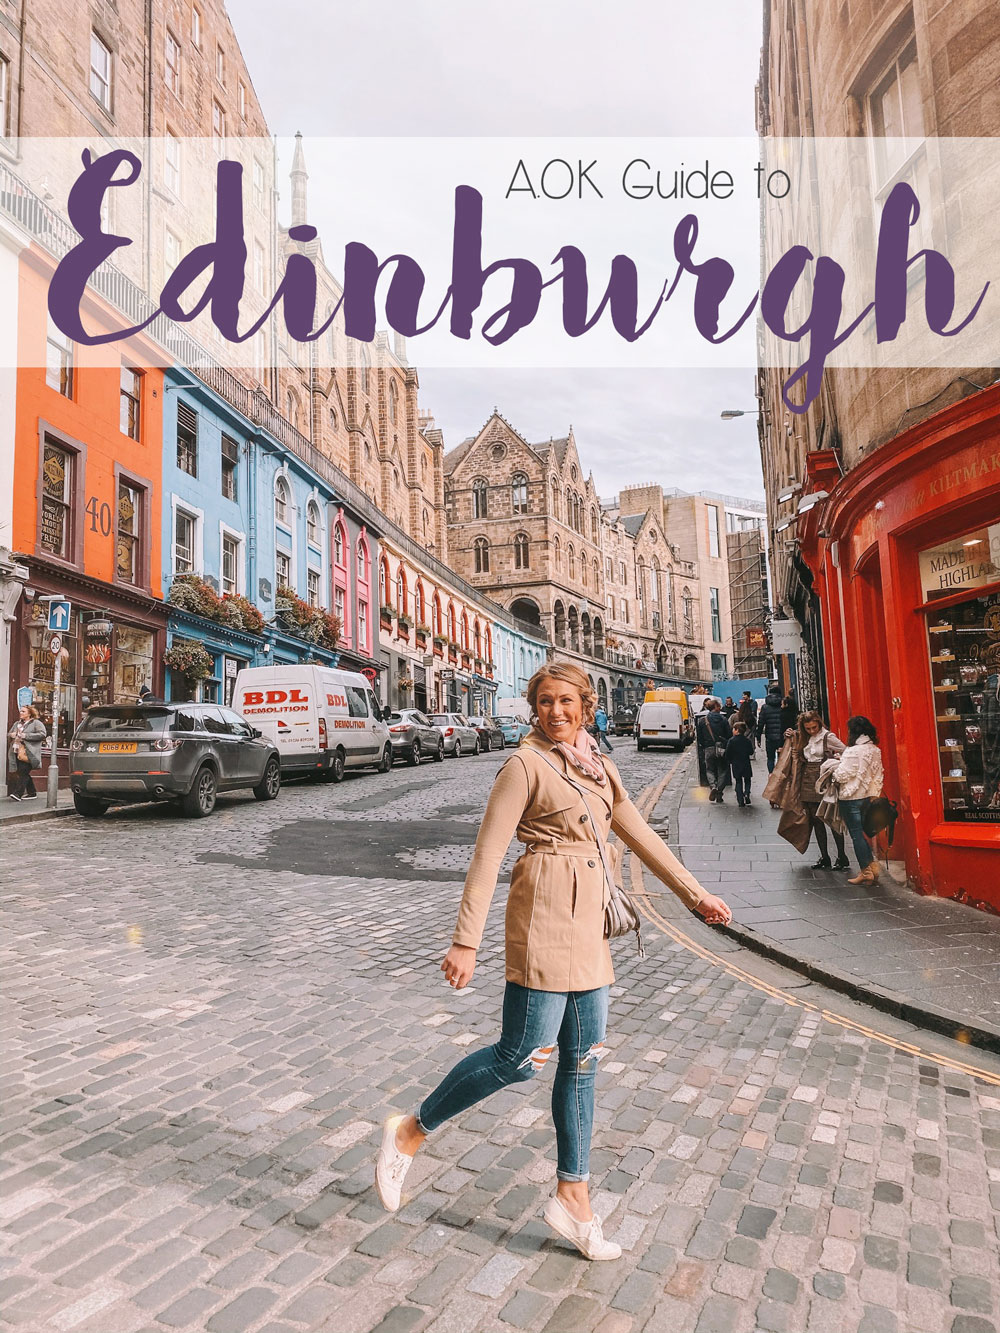 Blogger Amanda Martin's guide to Edinburgh